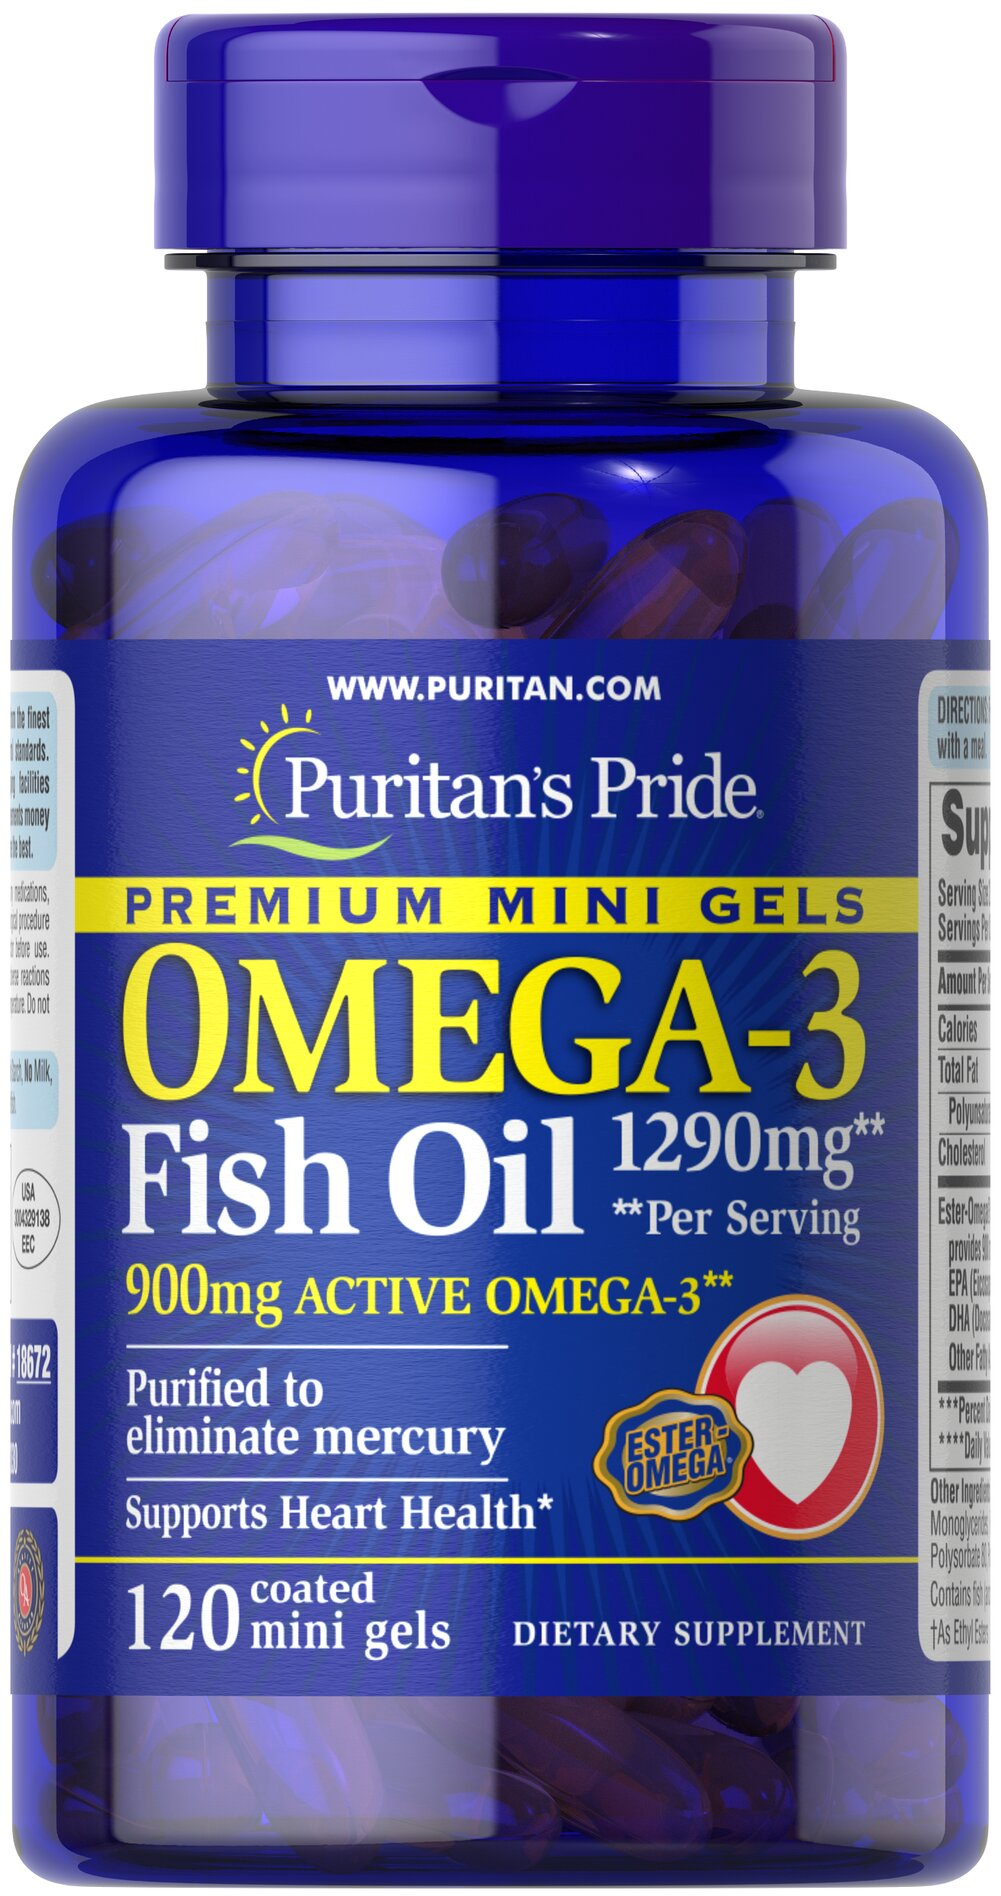 Omega-3 Fish Oil 645 mg Mini Gels (450 mg Active Omega-3) <p><strong>Purified to Eliminate Mercury</strong></p><p>Enhanced with 900 mg of active Omega-3 per serving</p><p>Mercury free mini gels are coated to prevent fishy aftertaste</p> 120 Coated Softgels 645 mg $42.99